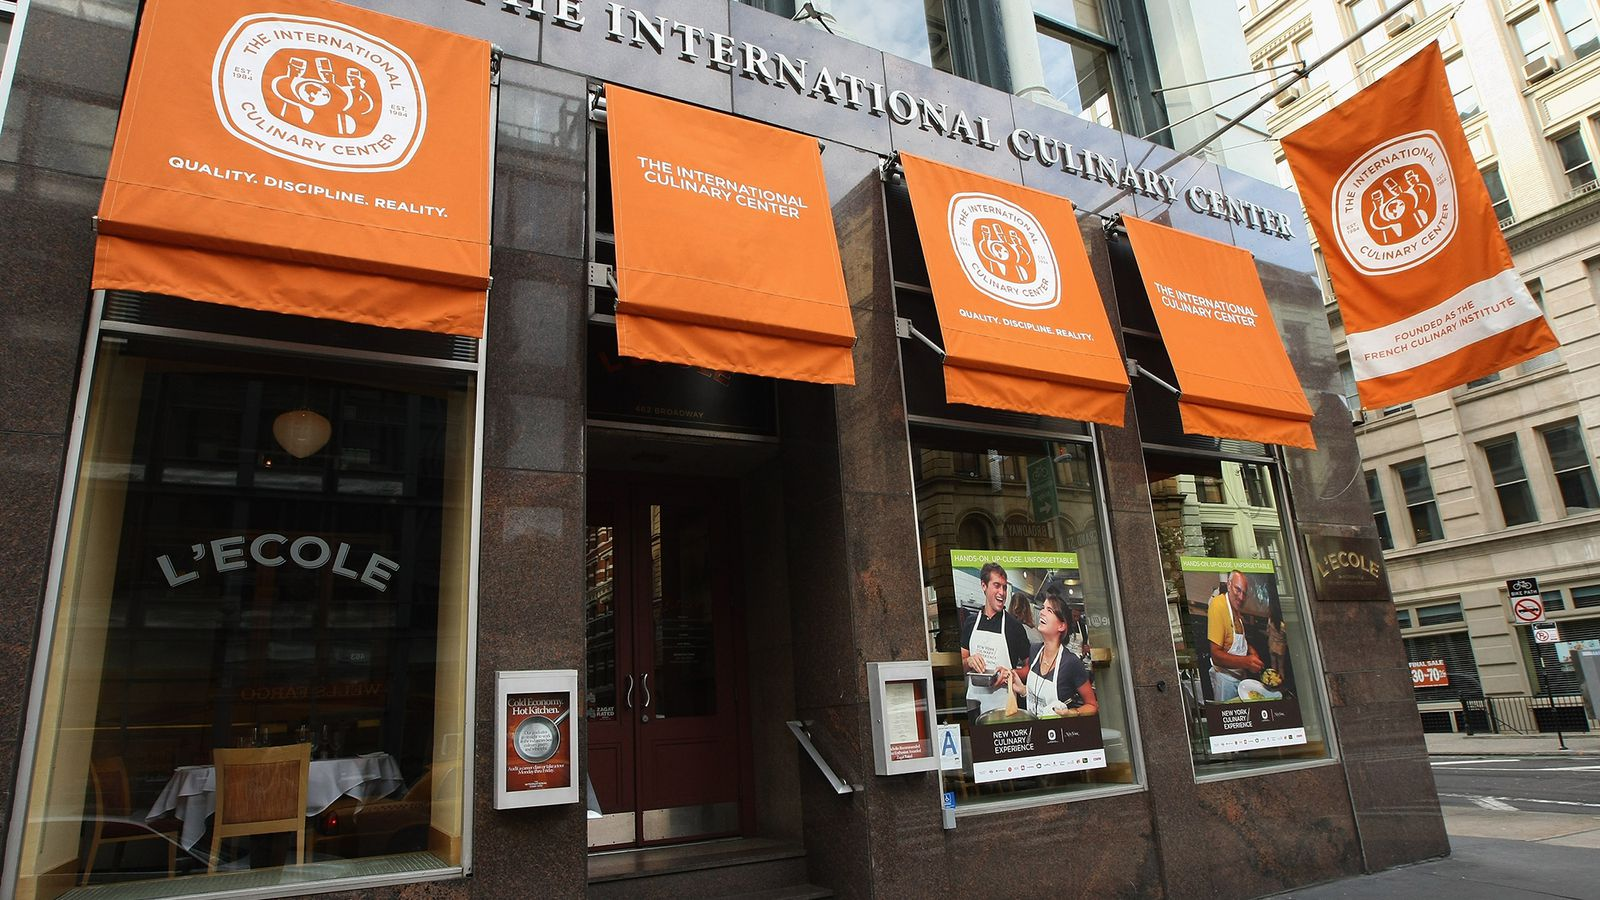 international culinary center slapped with lawsuitformer